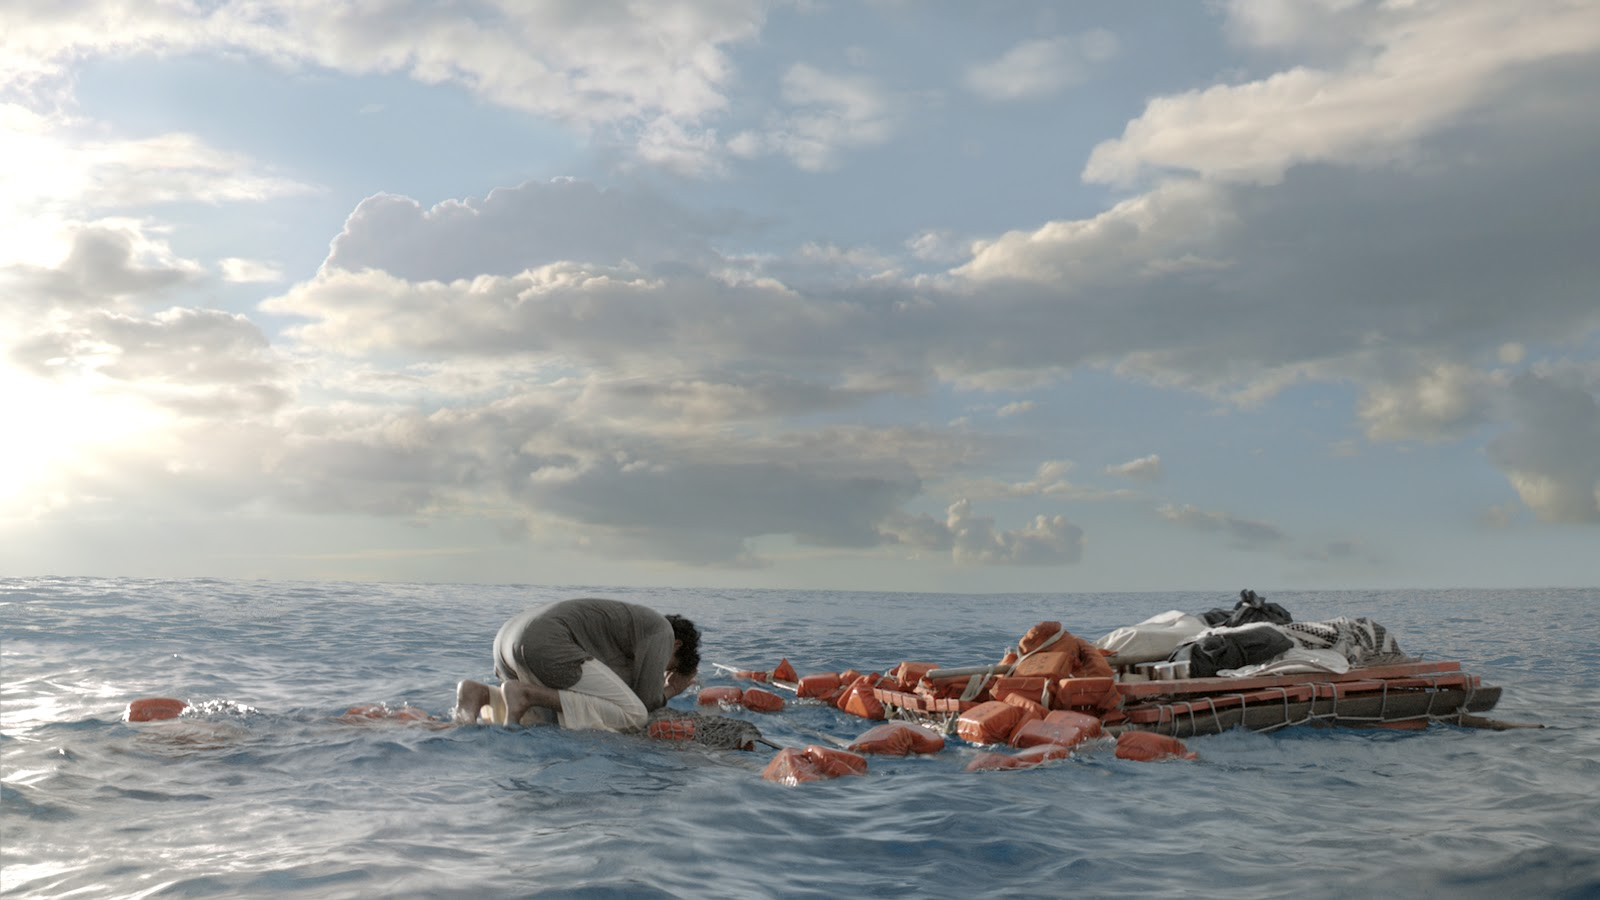 life of pi ocean exclusive life of pi behind the scenes photos  exclusive life of pi behind the scenes photos images the image